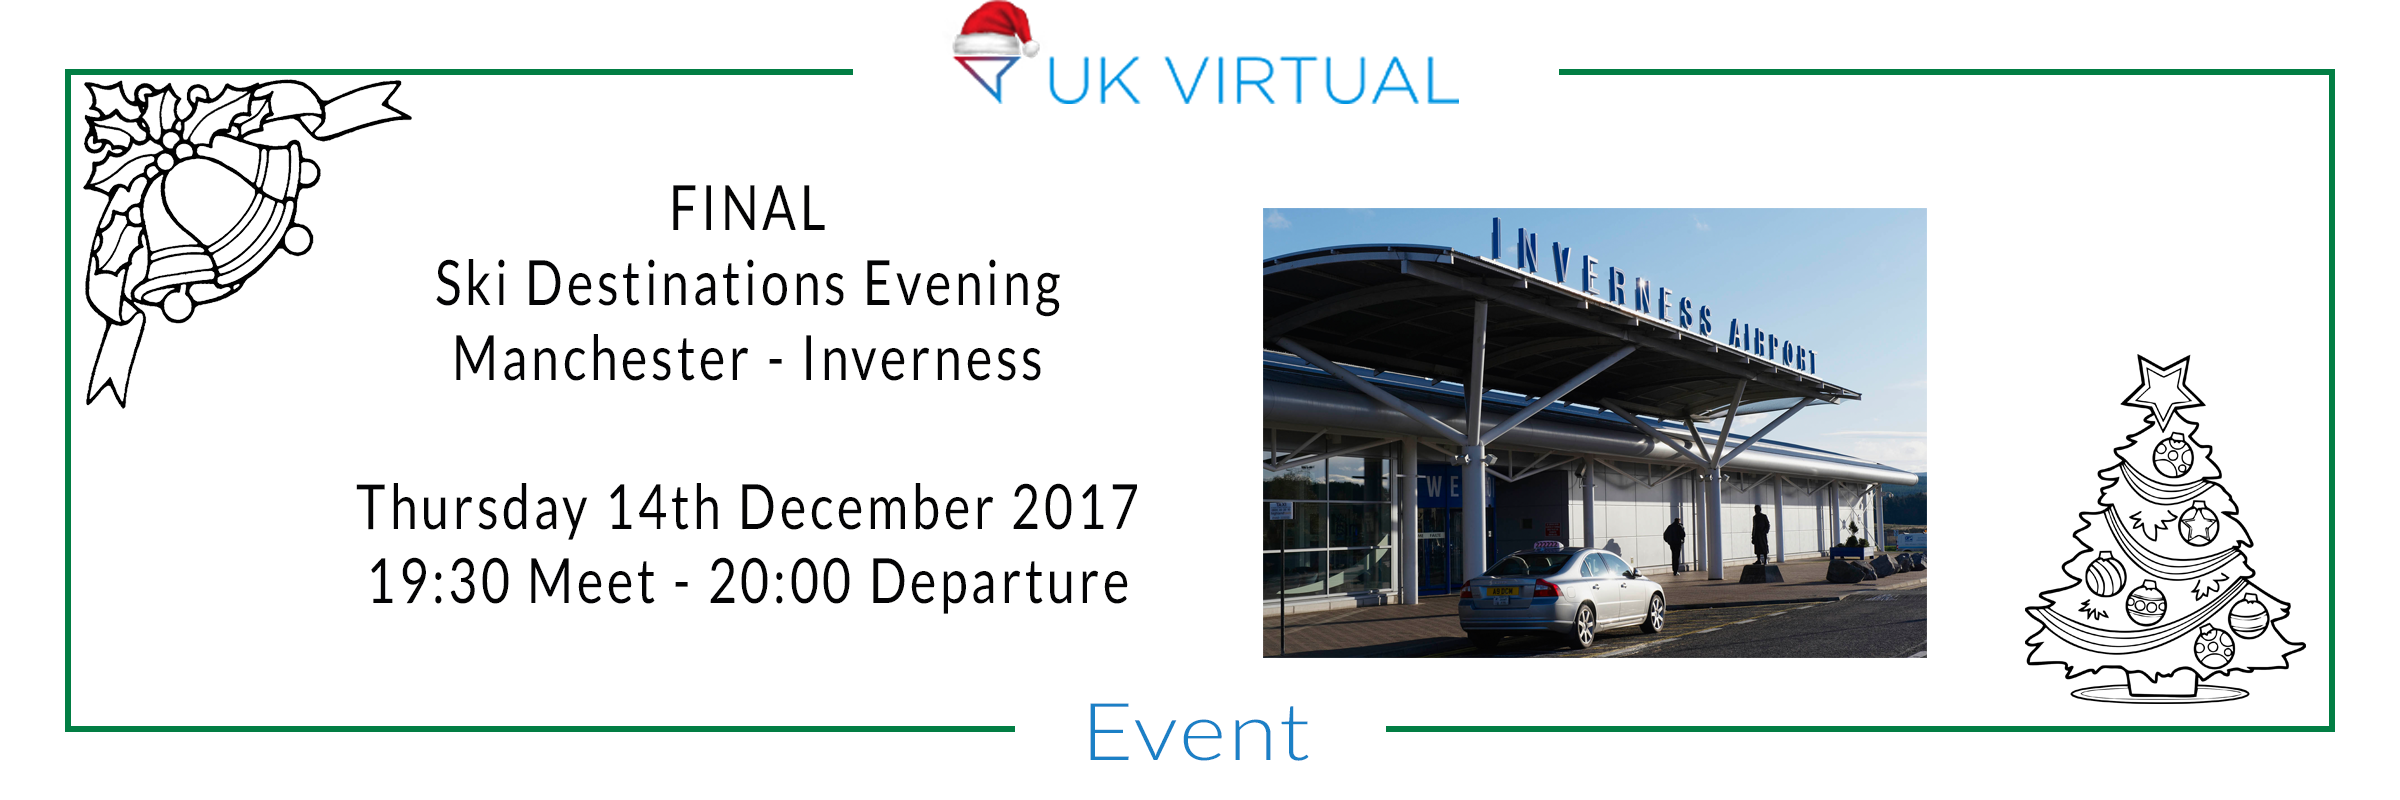 FINAL Ski Destinations evening : Manchester to Inverness